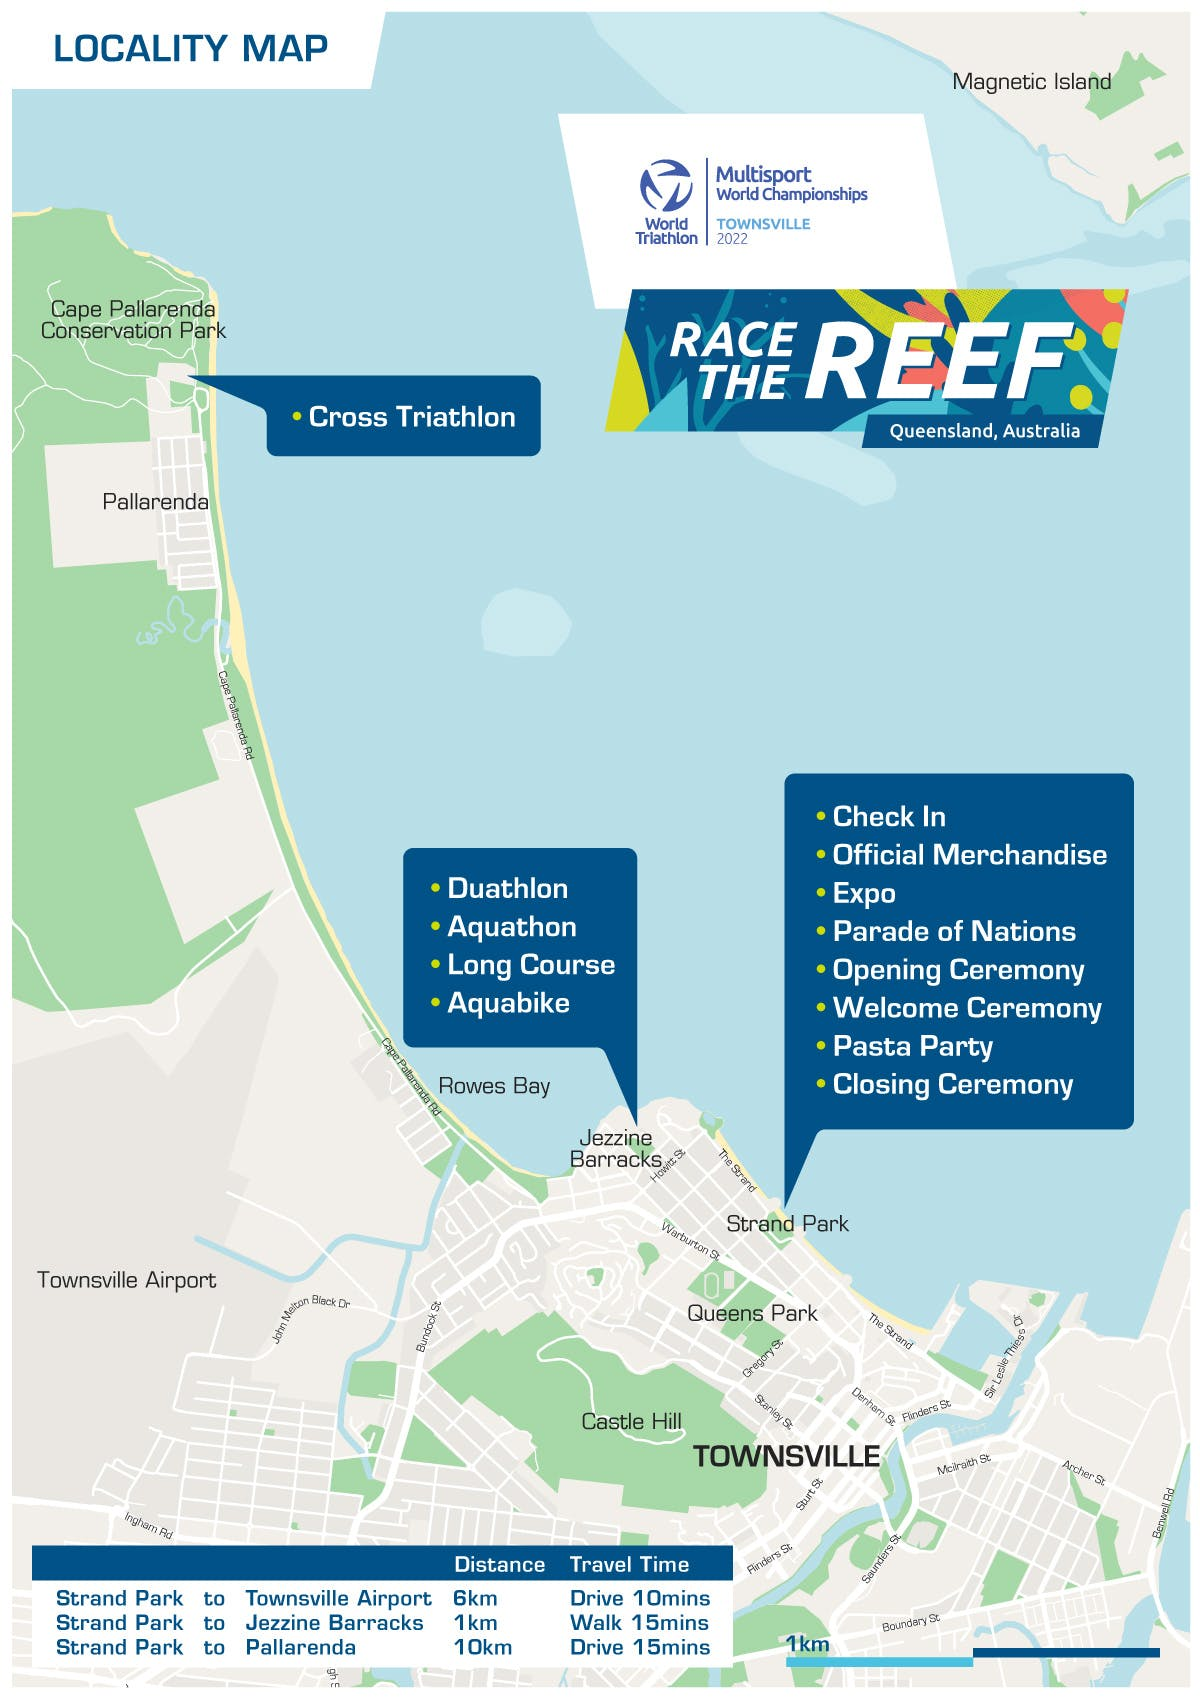 Multisport Championship Townsville22_Locality Map